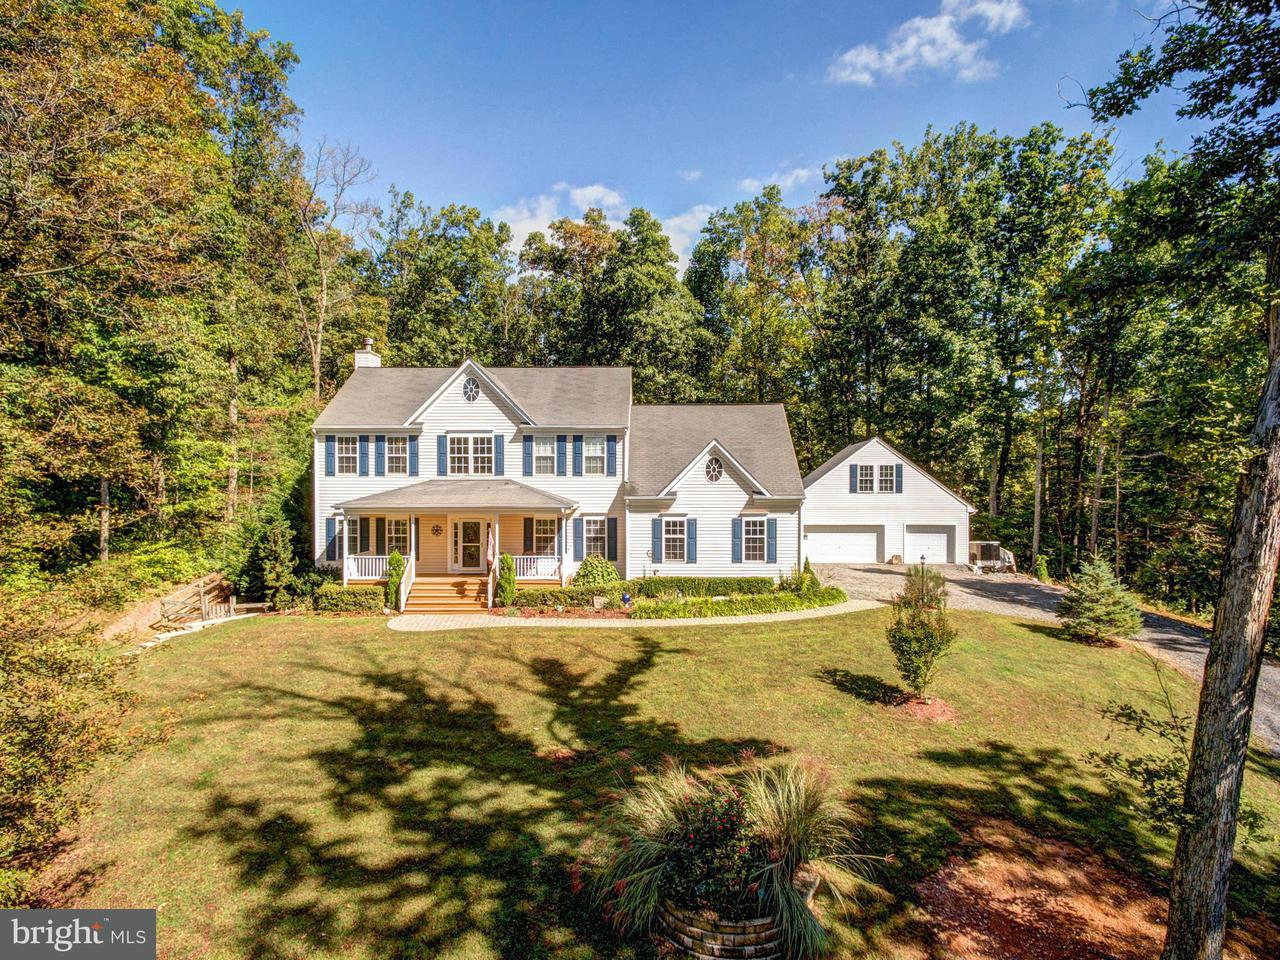 Single Family Home for Sale at 5471 Keyser Road 5471 Keyser Road Hume, Virginia 22639 United States